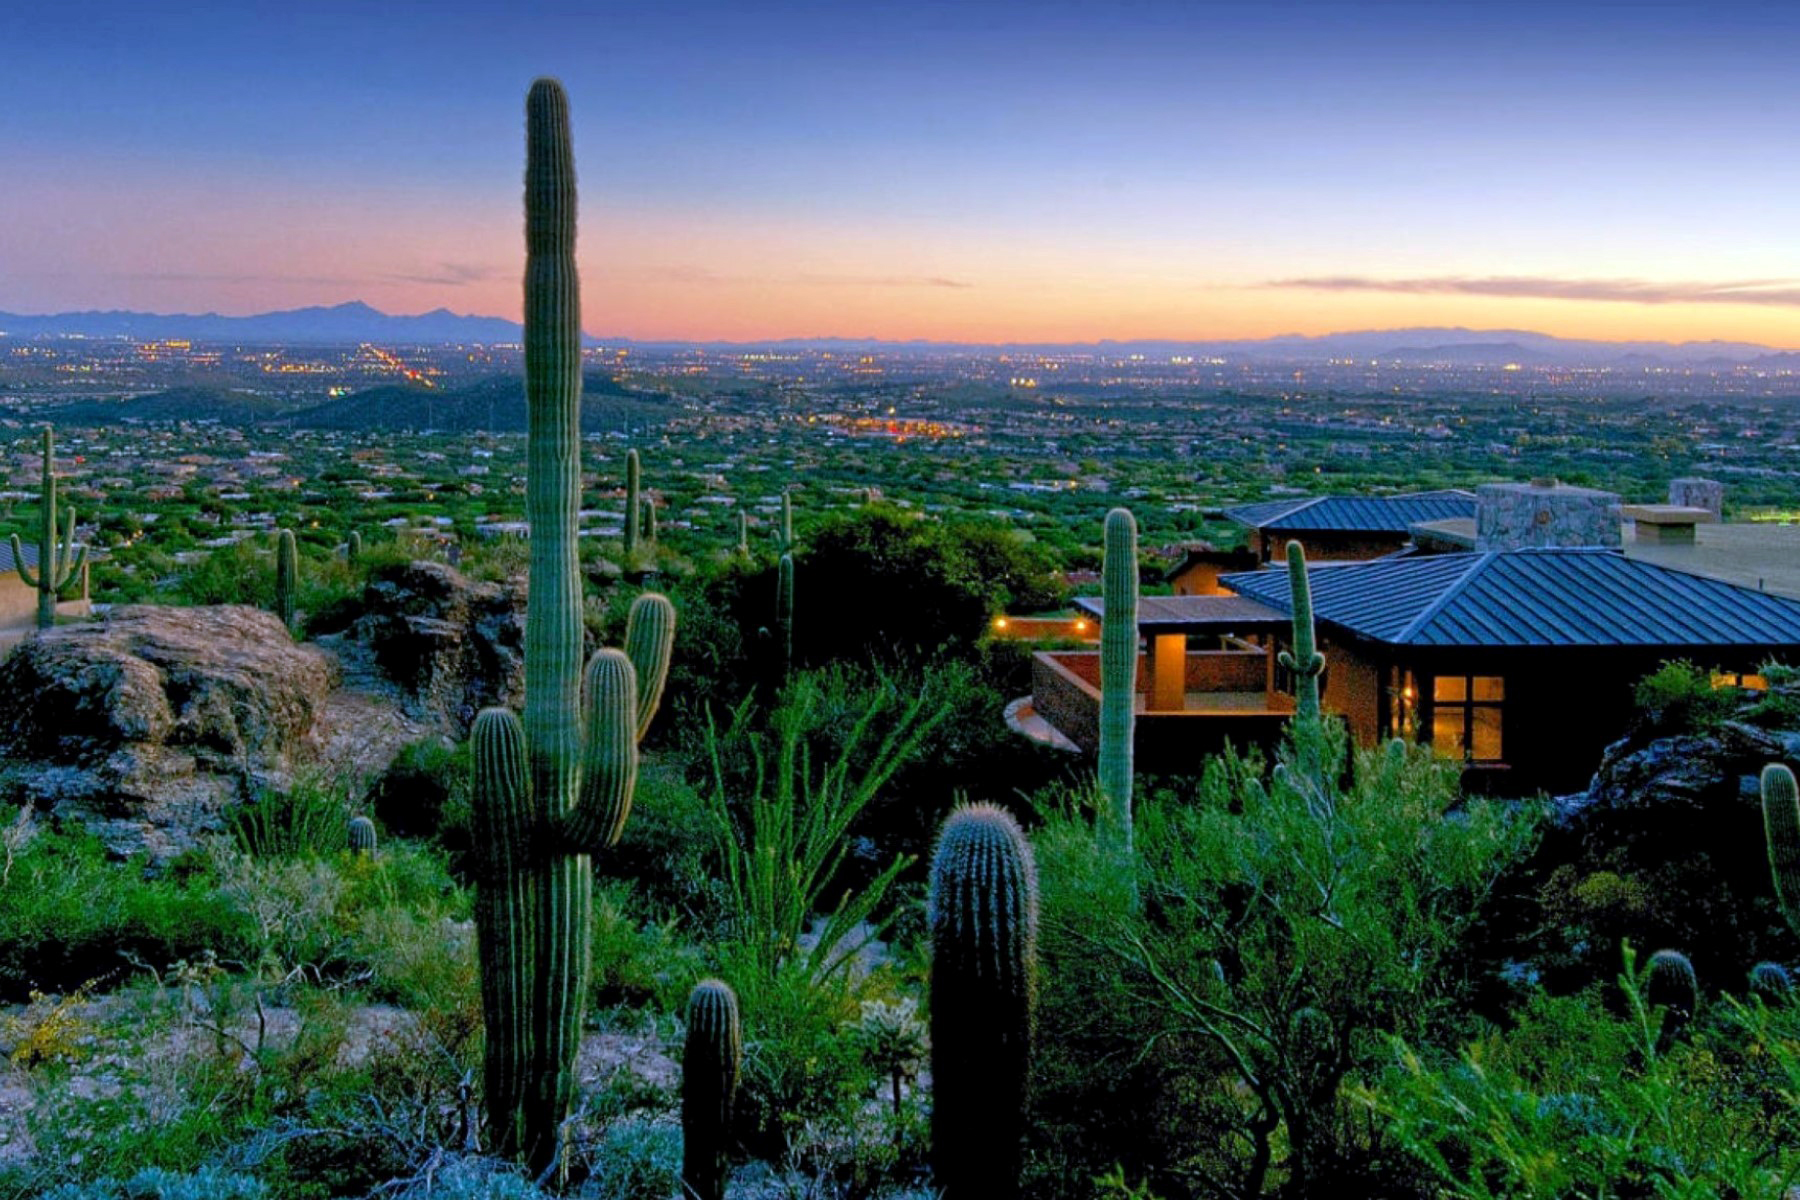 단독 가정 주택 용 매매 에 The Crown Jewel In Tucson Real Estate with Uncomparable Views 6600 N Eagle Ridge Drive Tucson, 아리조나 85718 미국